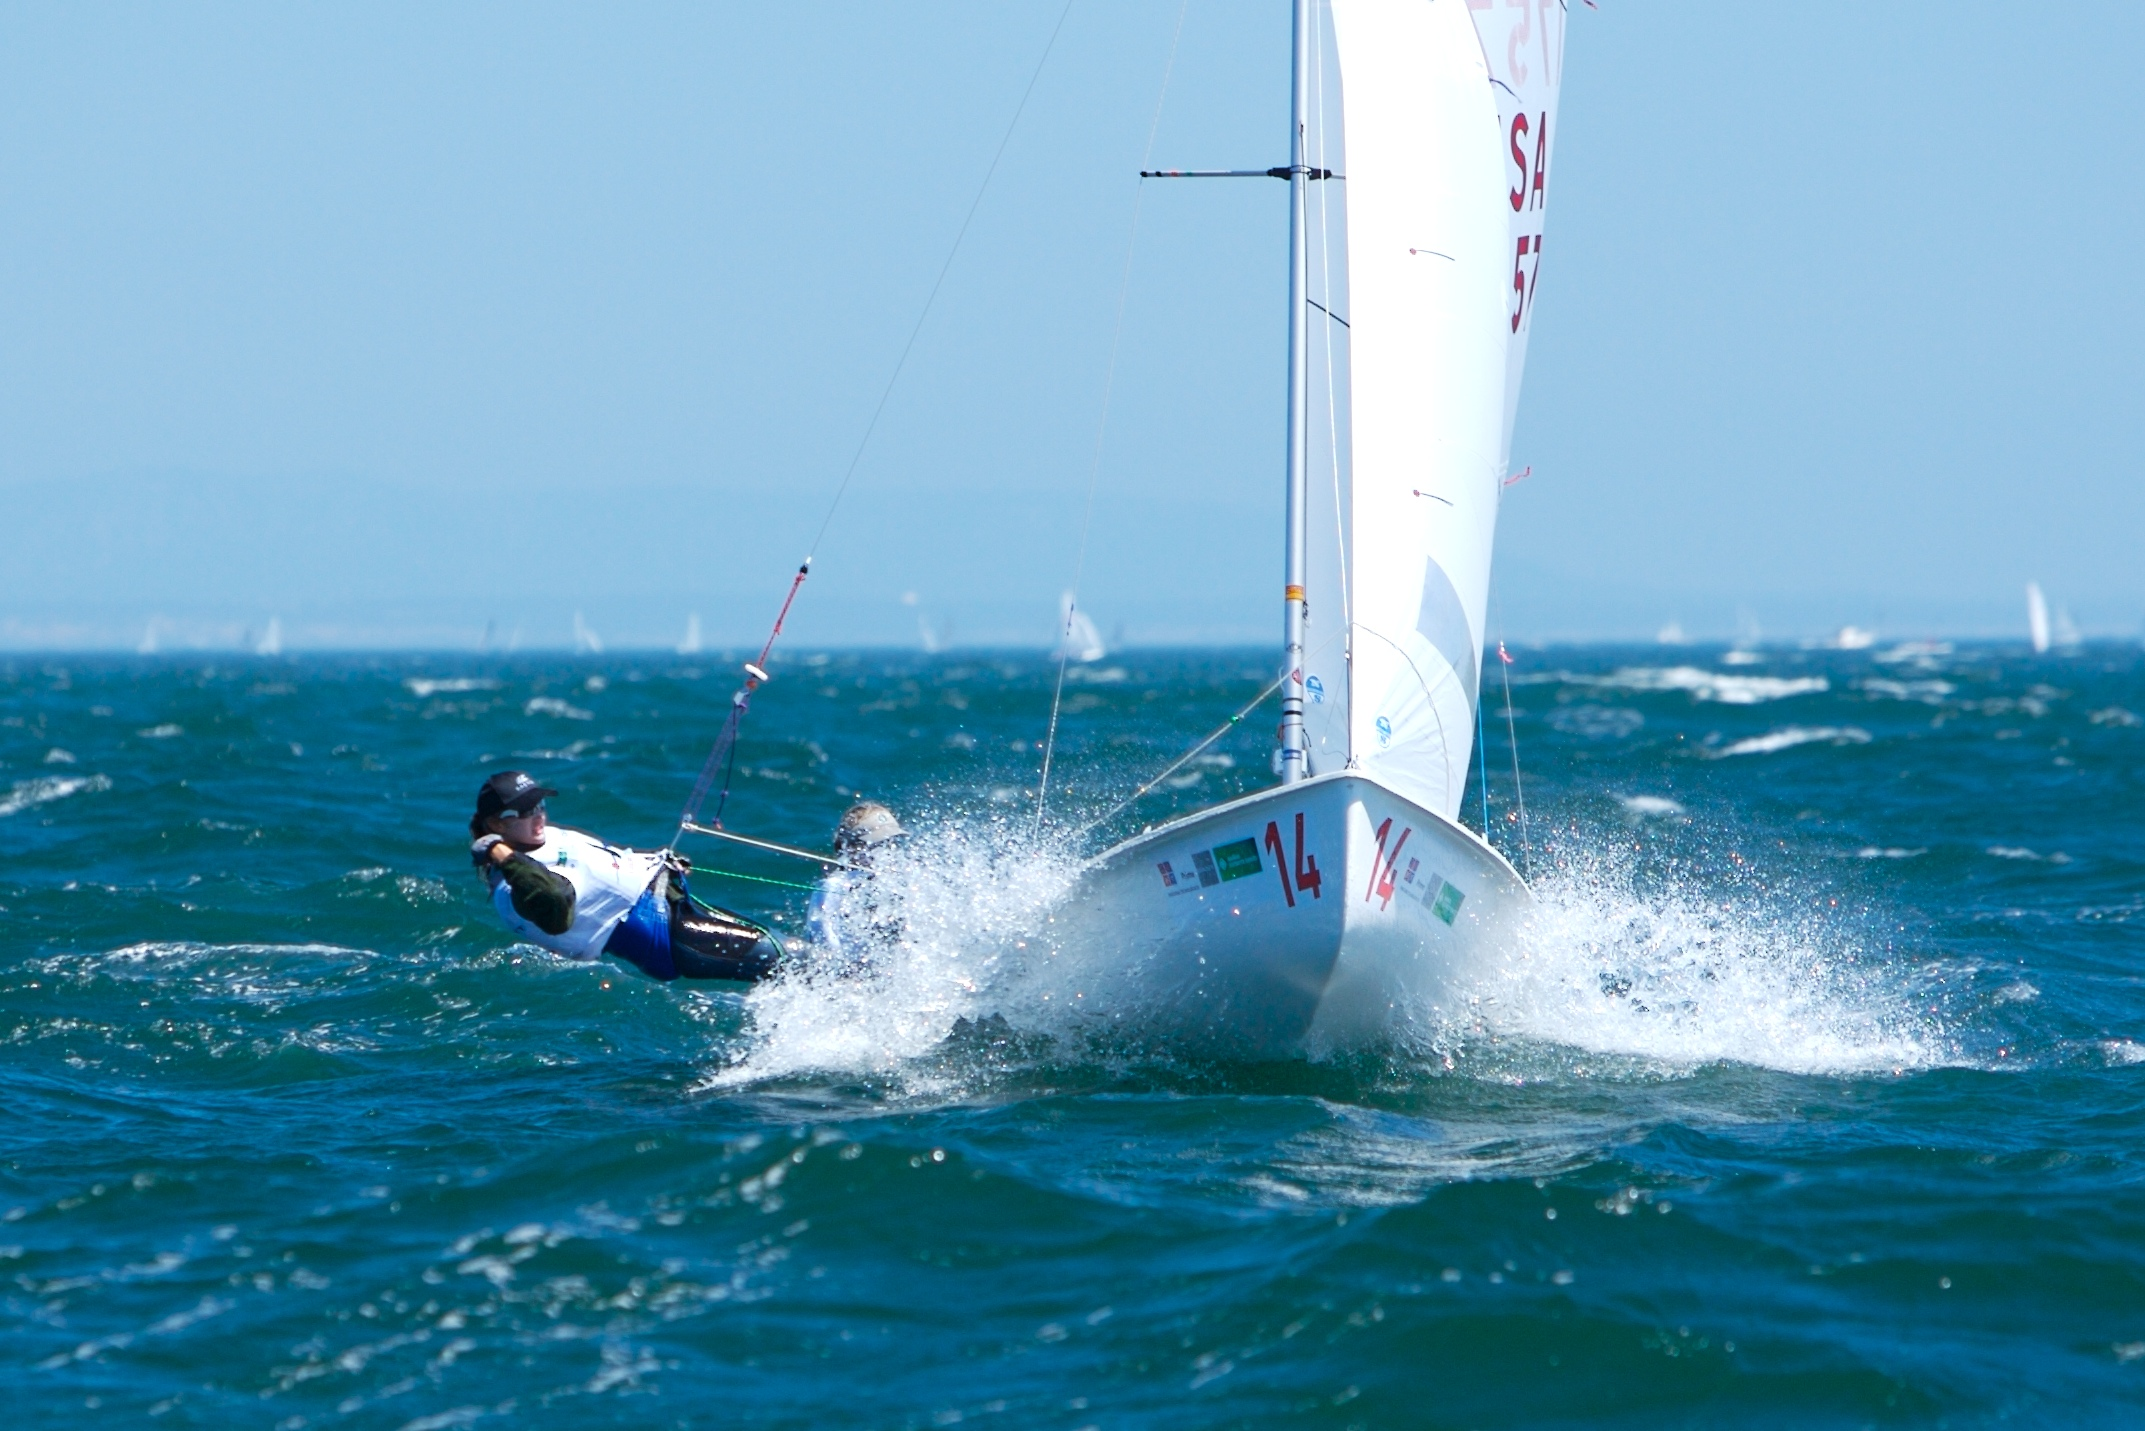 Olympics-Sailing-China's Lu wins gold in RS:X after light winds cause delay